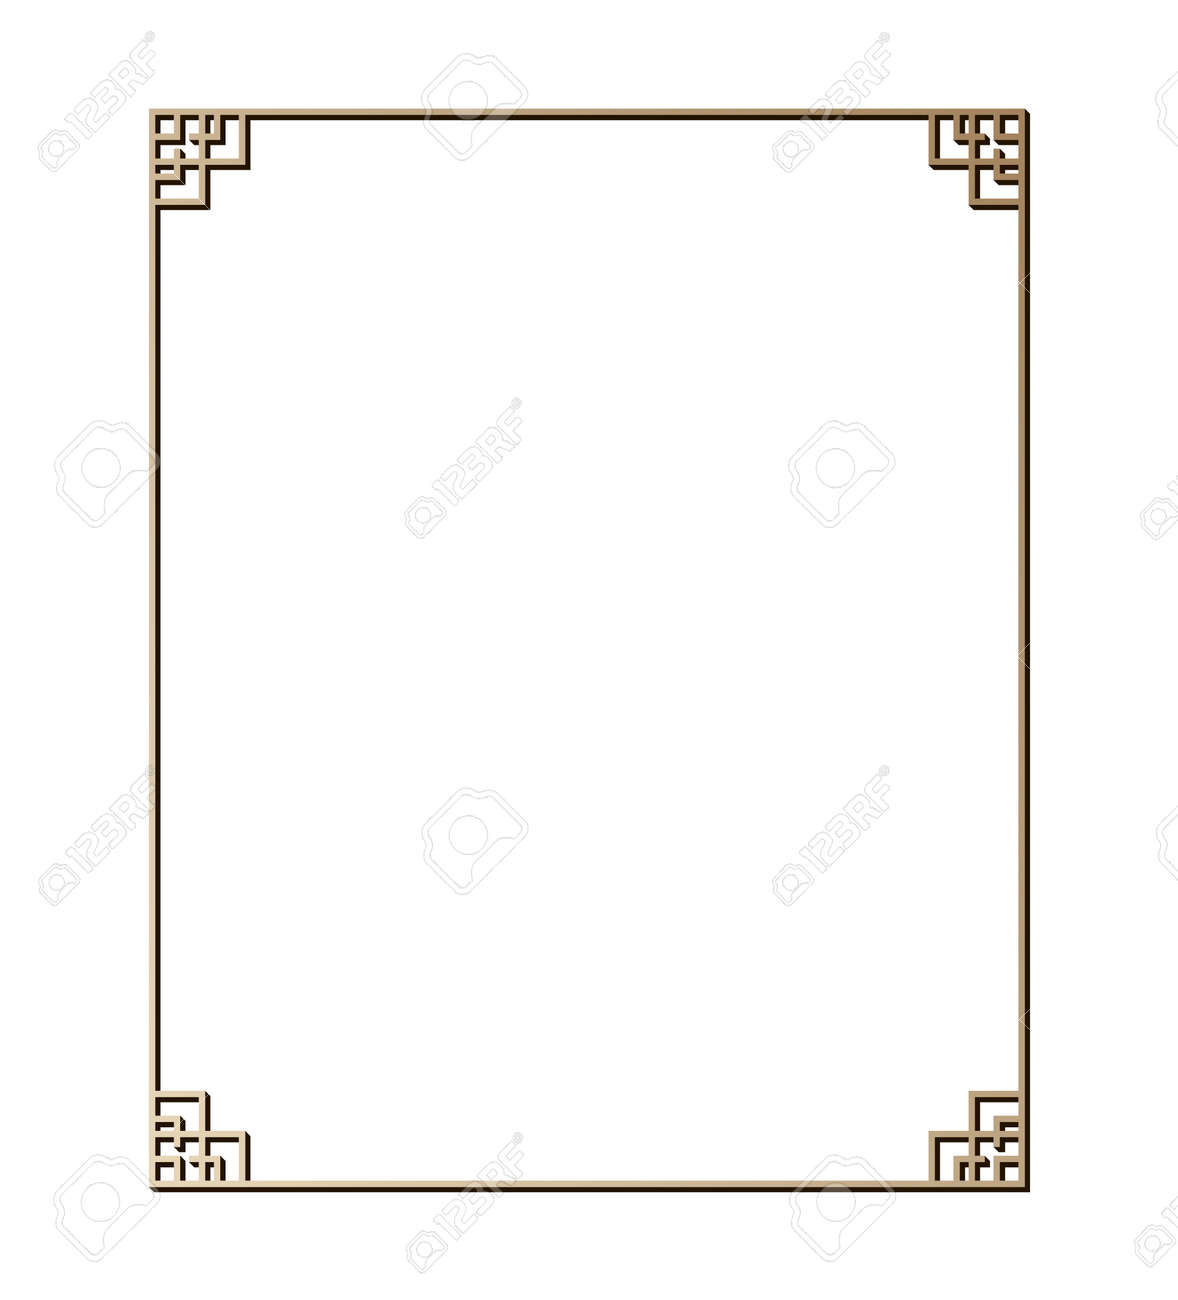 Vector illustration of art deco borders and frames. Creative pattern in the style of the 1920s for your design. - 146736080